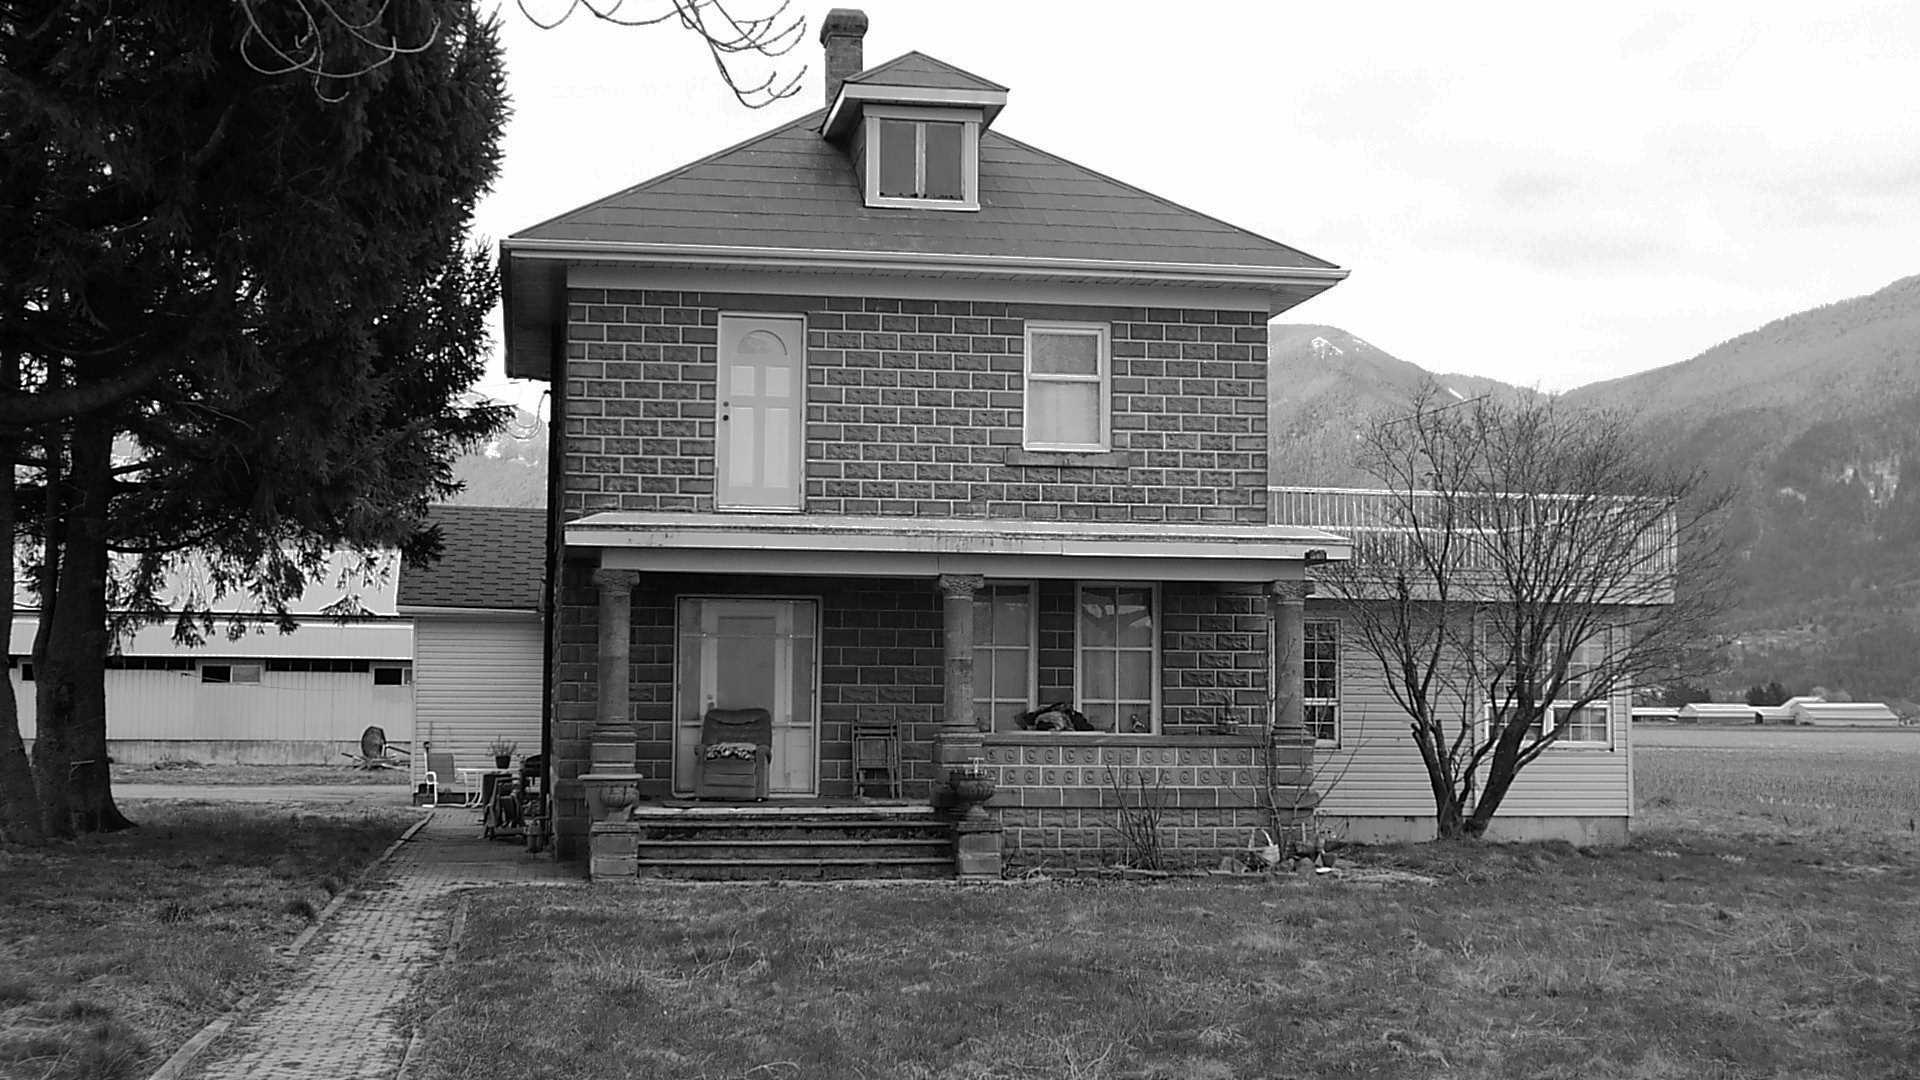 The royal hotel chilliwack blog concrete block houses for Cement block house